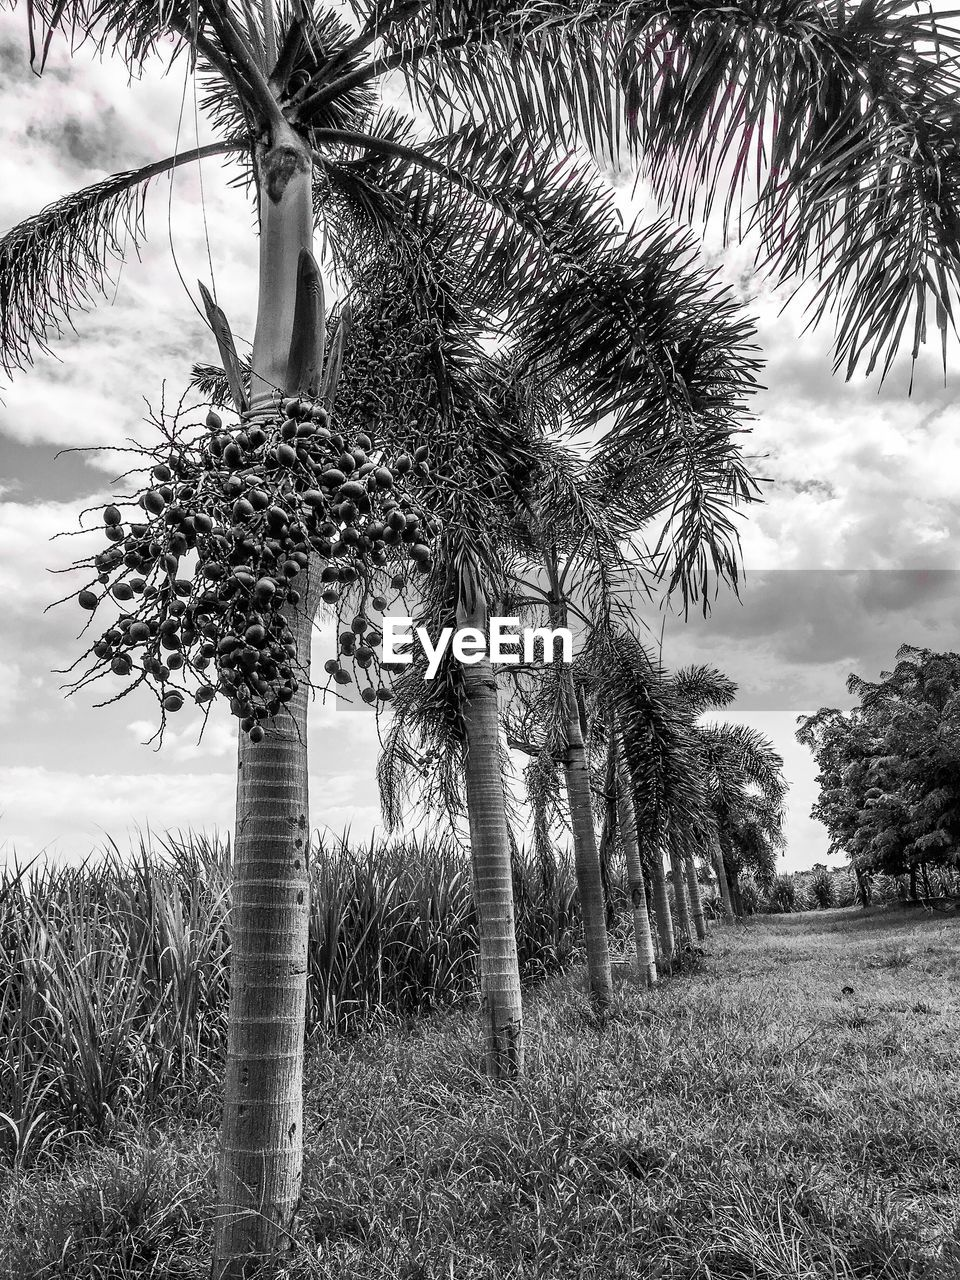 tree, palm tree, growth, sky, tree trunk, field, outdoors, day, nature, tranquility, tranquil scene, no people, beauty in nature, scenics, low angle view, branch, grass, landscape